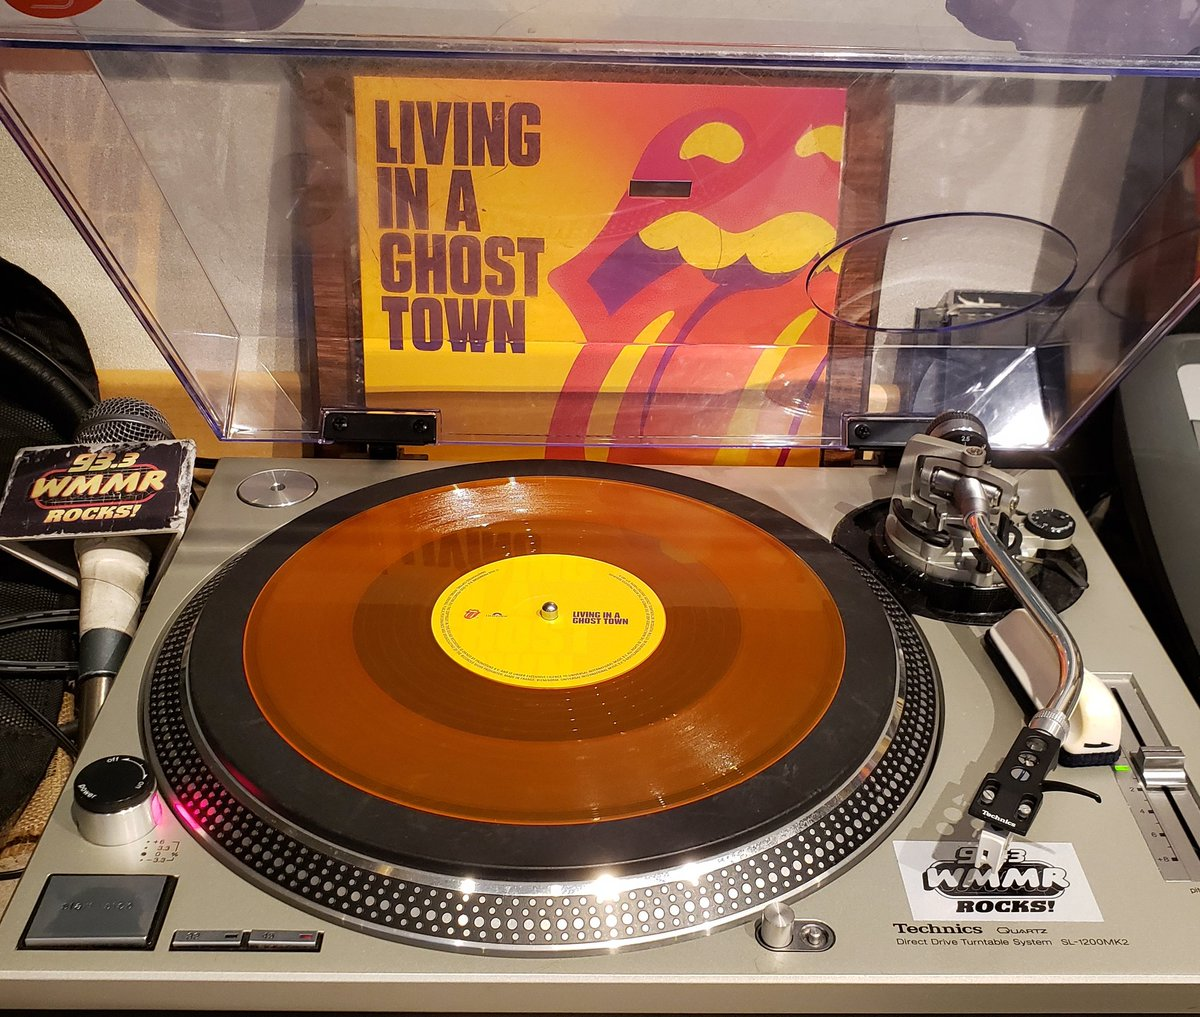 Playing virgin orange @RollingStones vinyl today for the vinyl cut on @933WMMR! This band is still making new music and still putting it out on vinyl! https://t.co/6SNZNP3gdP